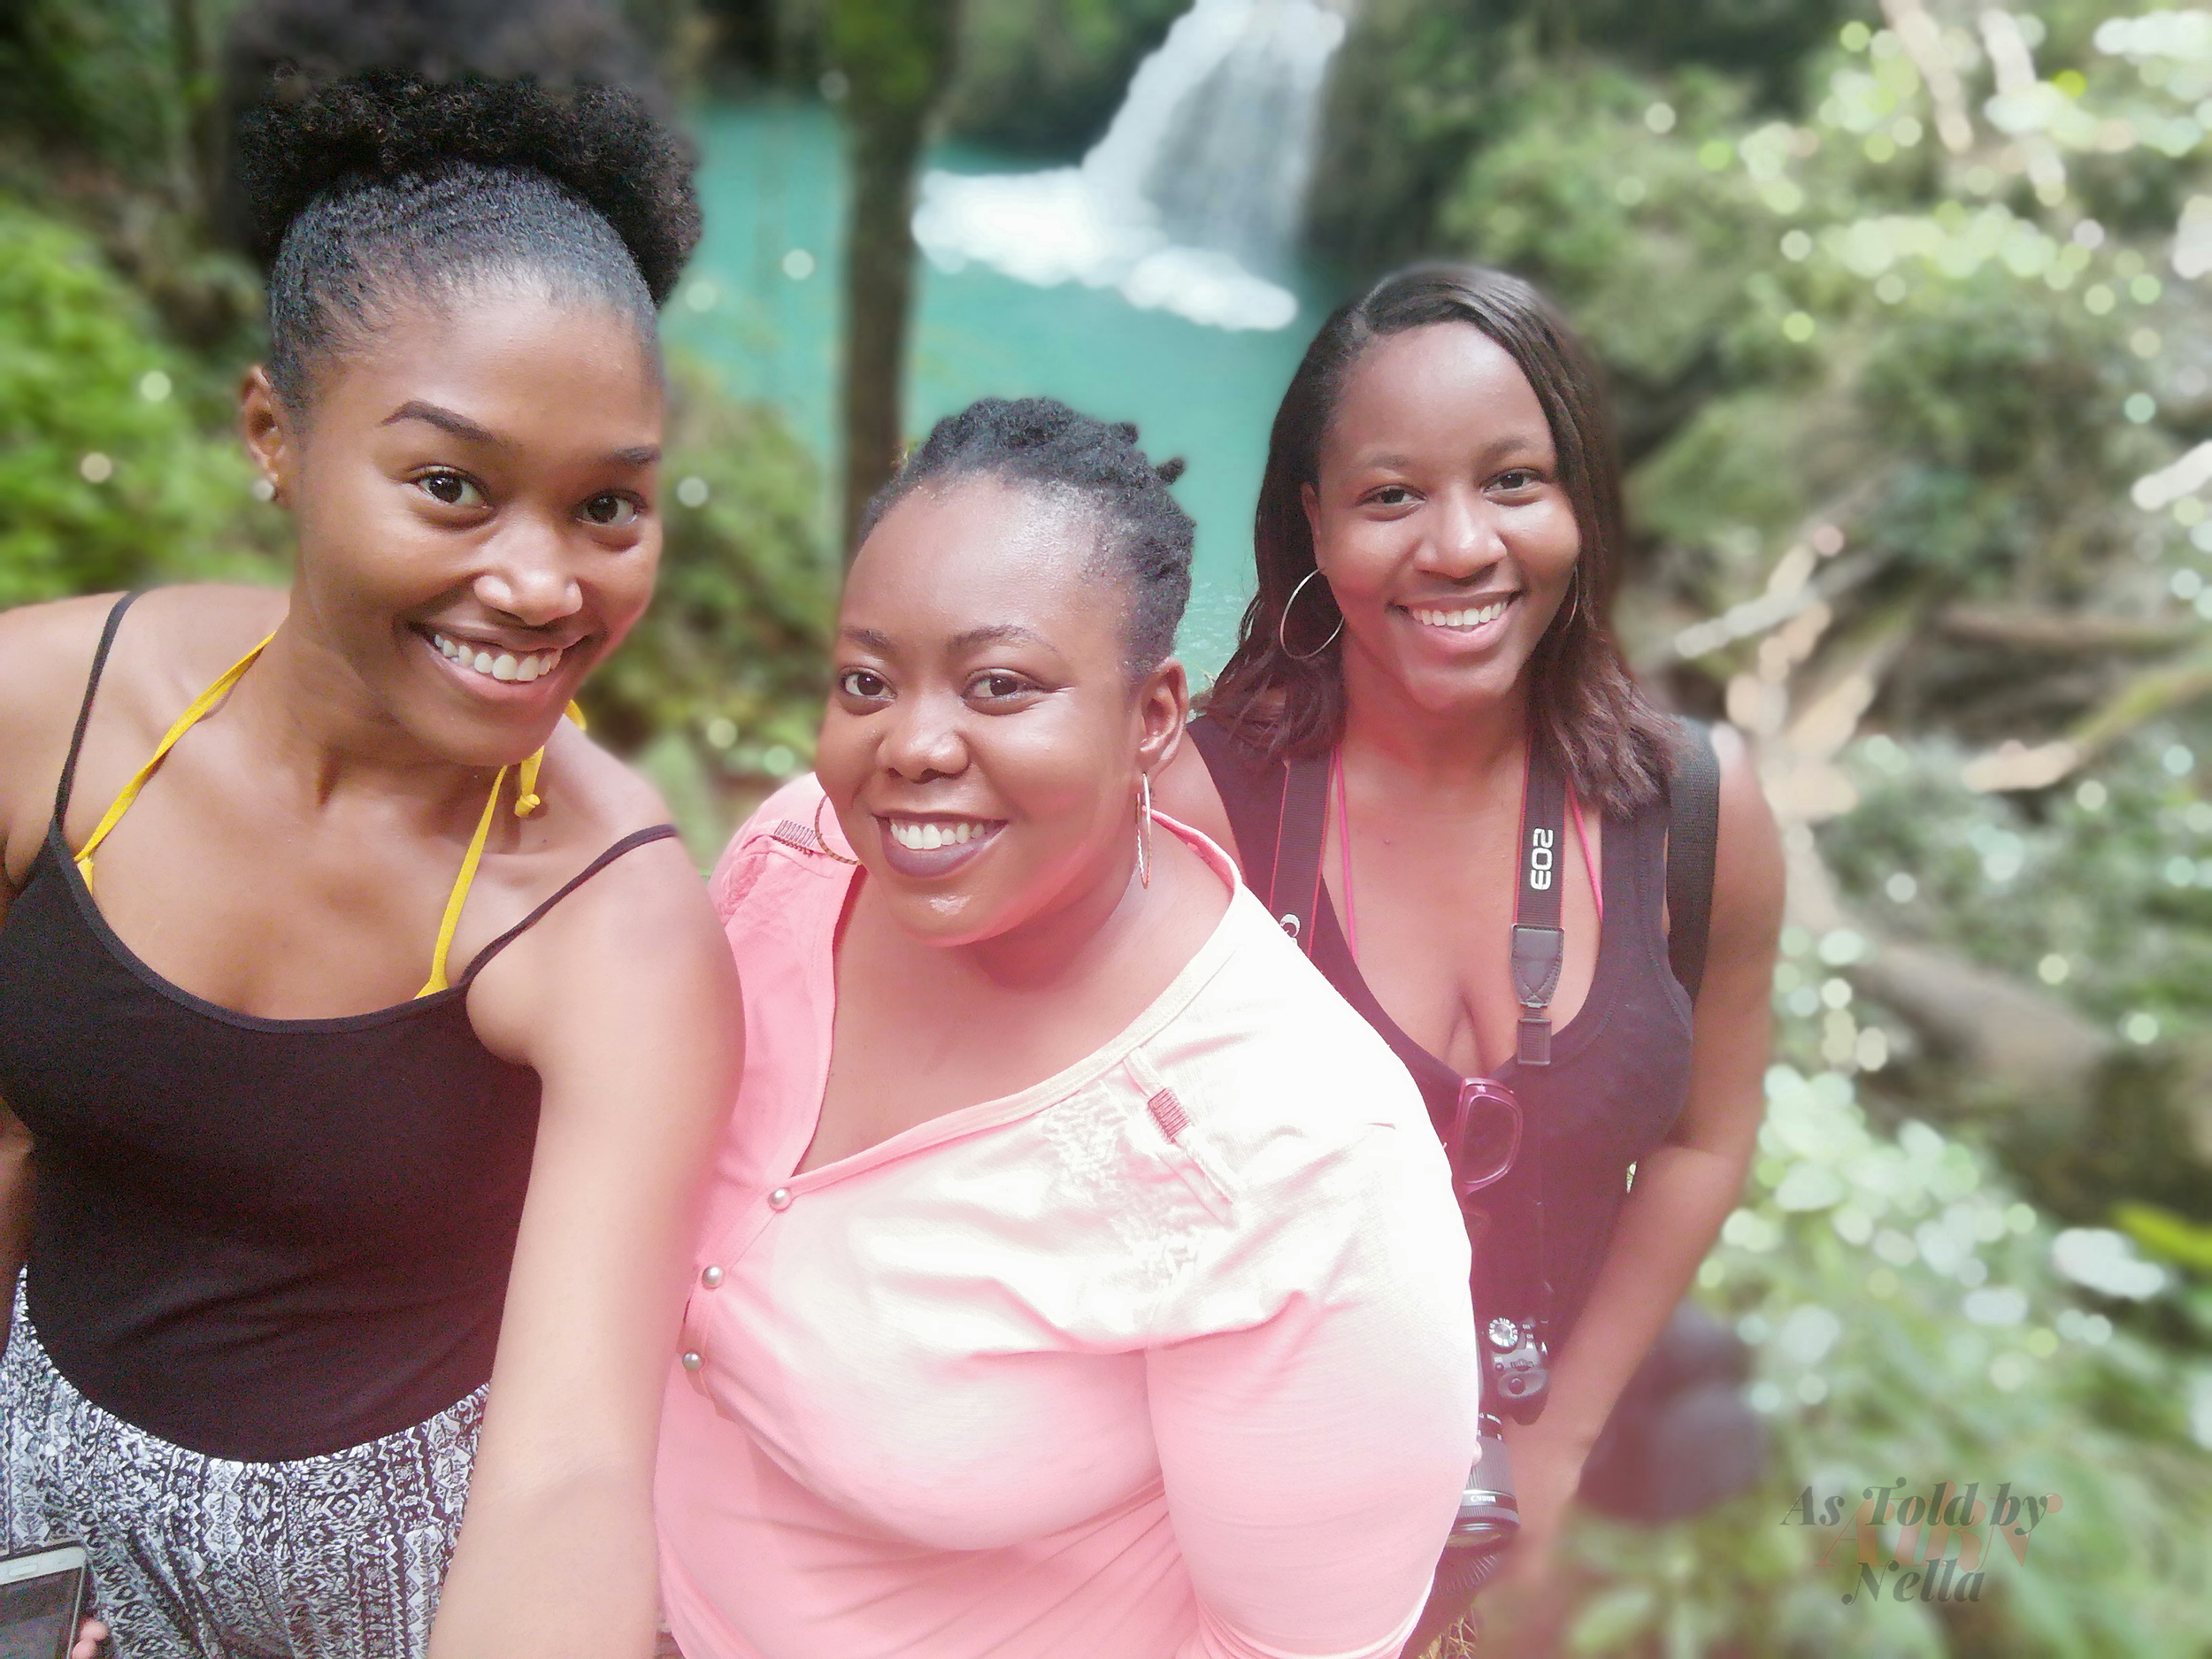 My blogger companions for the day, Rochelle (left) and Jhunelle (right) at Breadnut Valley Falls